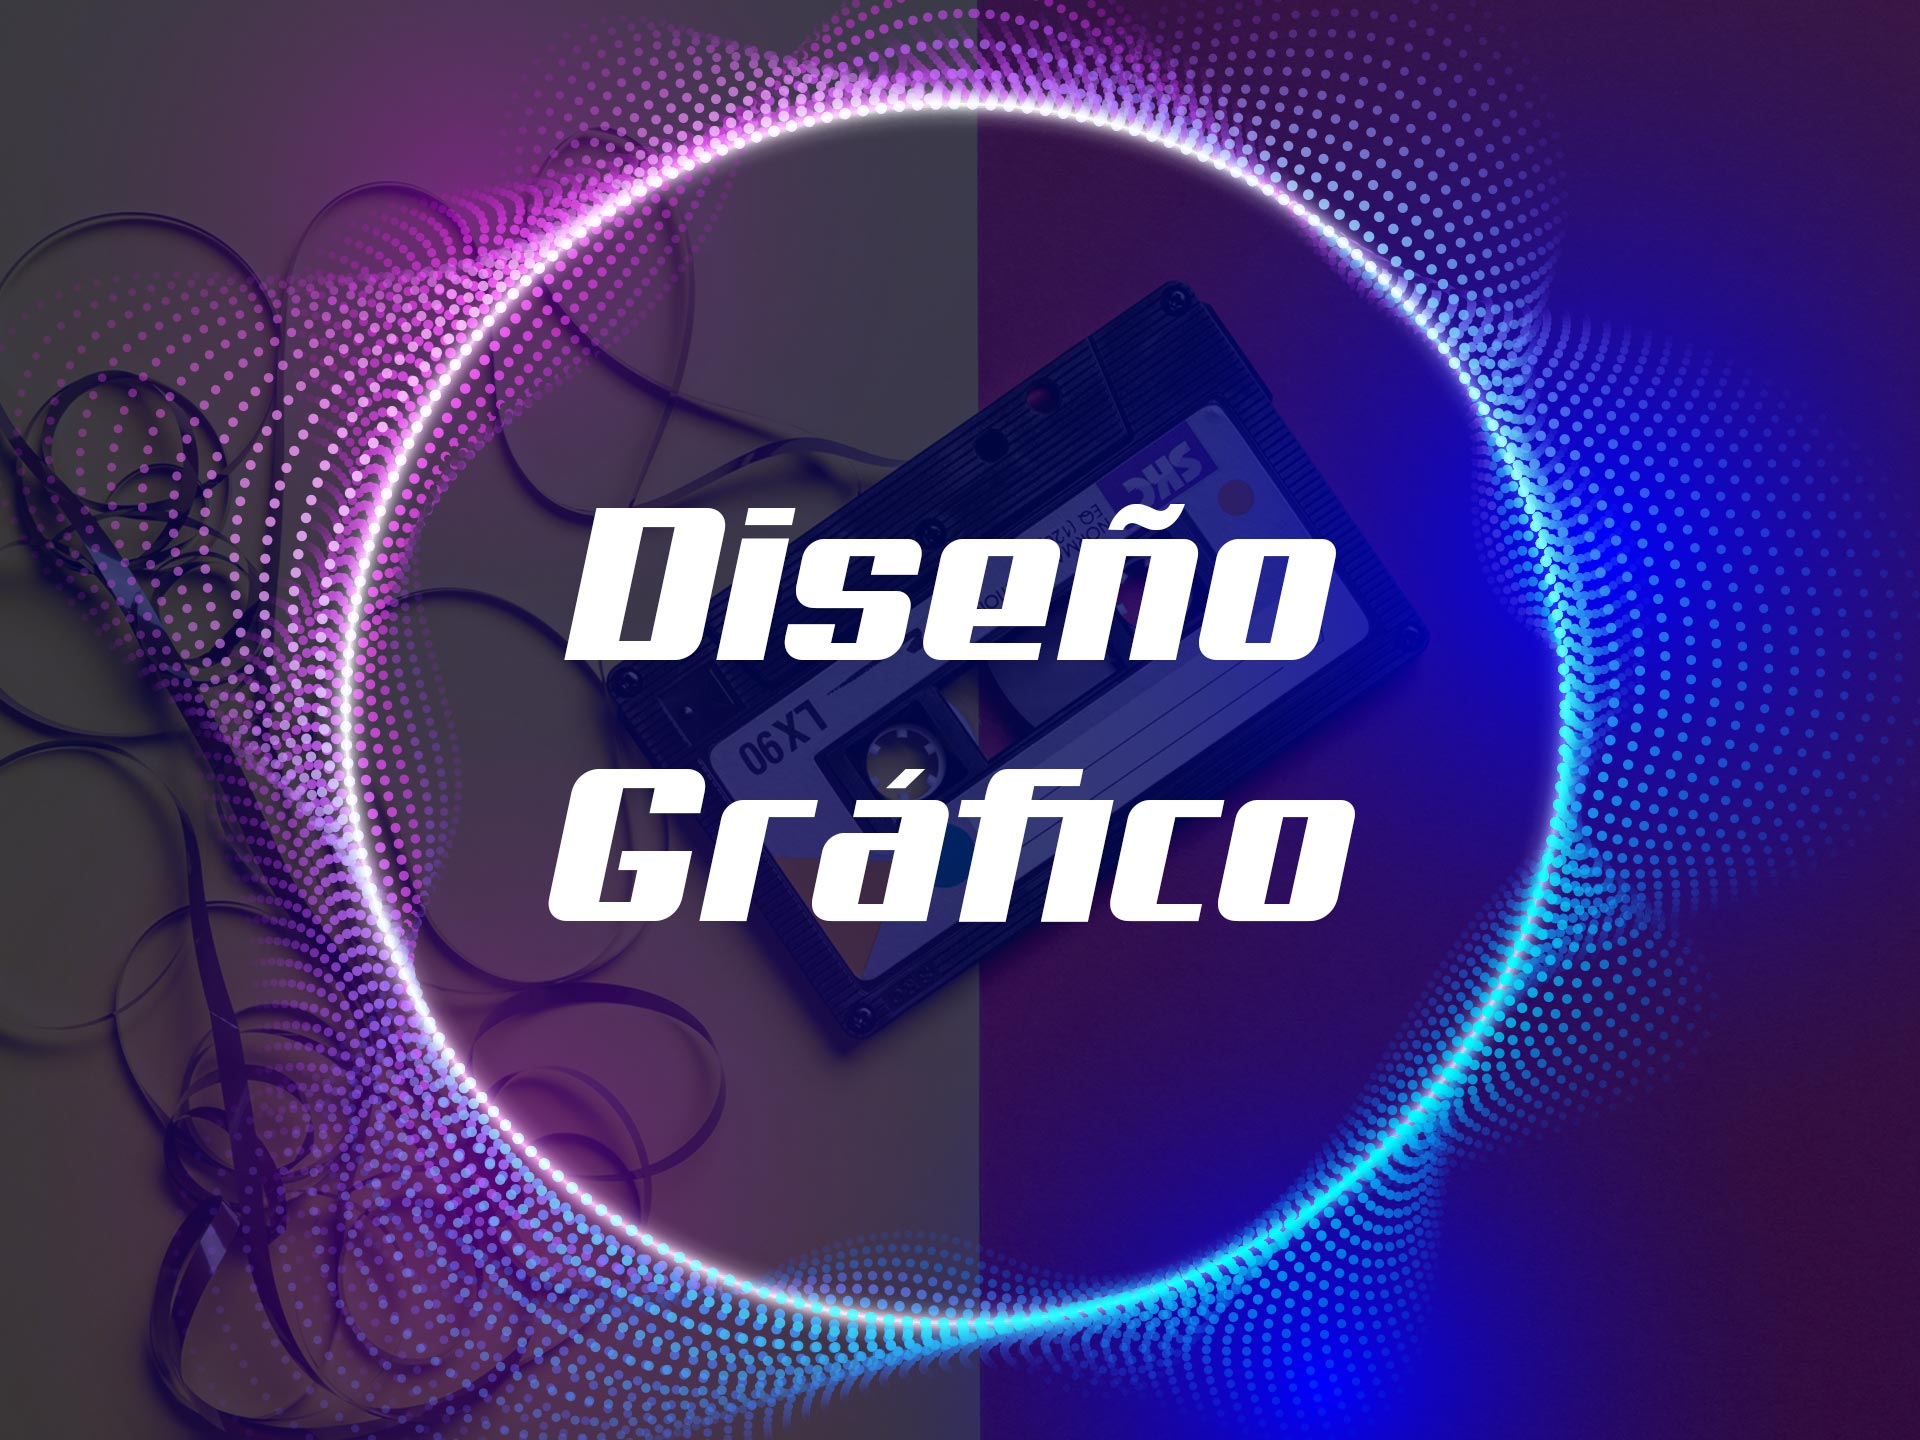 Diseño Gráfico Benaim Corp Digital Social Media Design Websites Wordpress E-commerce Community Management Argentina Patagonia Worldwide Services Information News Science Video Games Servicios Información Noticias Redes Sociales Diseño Web Ciencia Ficción Economy Finance Economía Finanzas Facebook Instagram Twitter YouTube WhatsApp